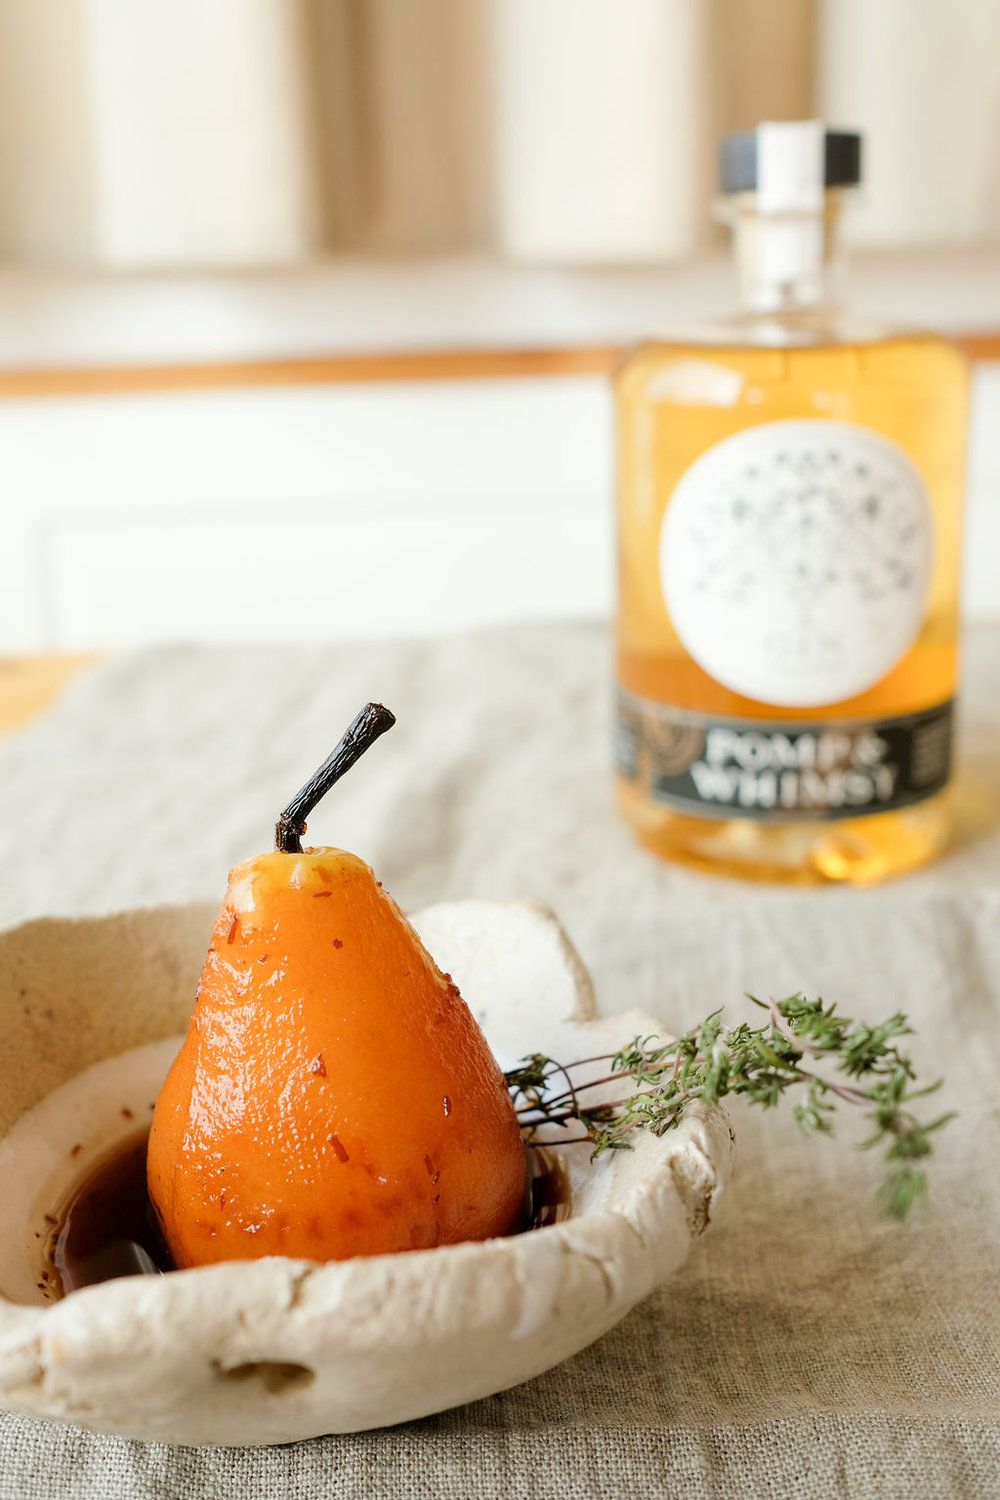 POMP & WHIMSY GIN LIQUER    Pomp & Whimsy, bringing modern sensibilities to the tradition of gin making, by infusing classically distilled gin with a natural, delightfully flavorful botanical liqueur.  The result is a highly refined, yet playfully sensorial spirit, that is both graceful by itself, and effortlessly dressed, up or down.   Photo by Bessie Lacap, Torn Bowl available through    Piece of Clay